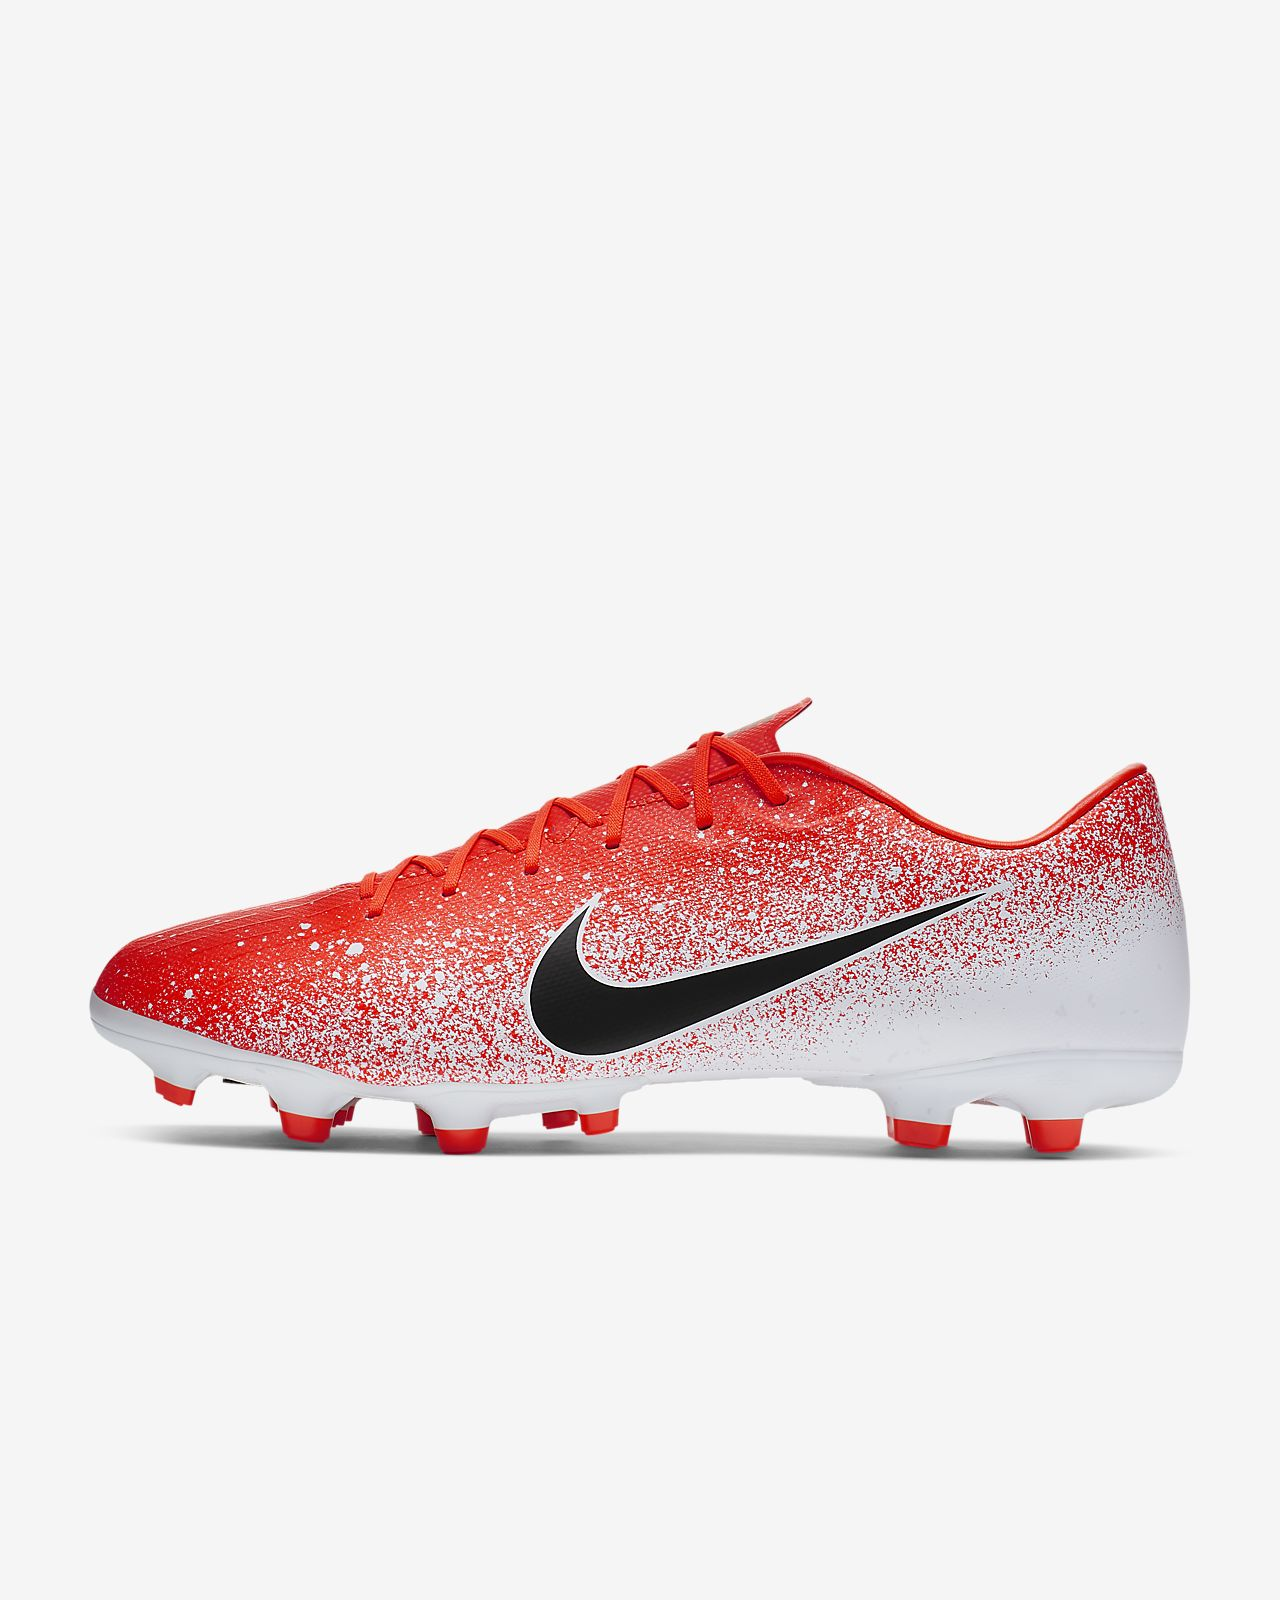 cf745aac204 Nike Vapor 12 Academy MG Multi-Ground Soccer Cleat. Nike.com